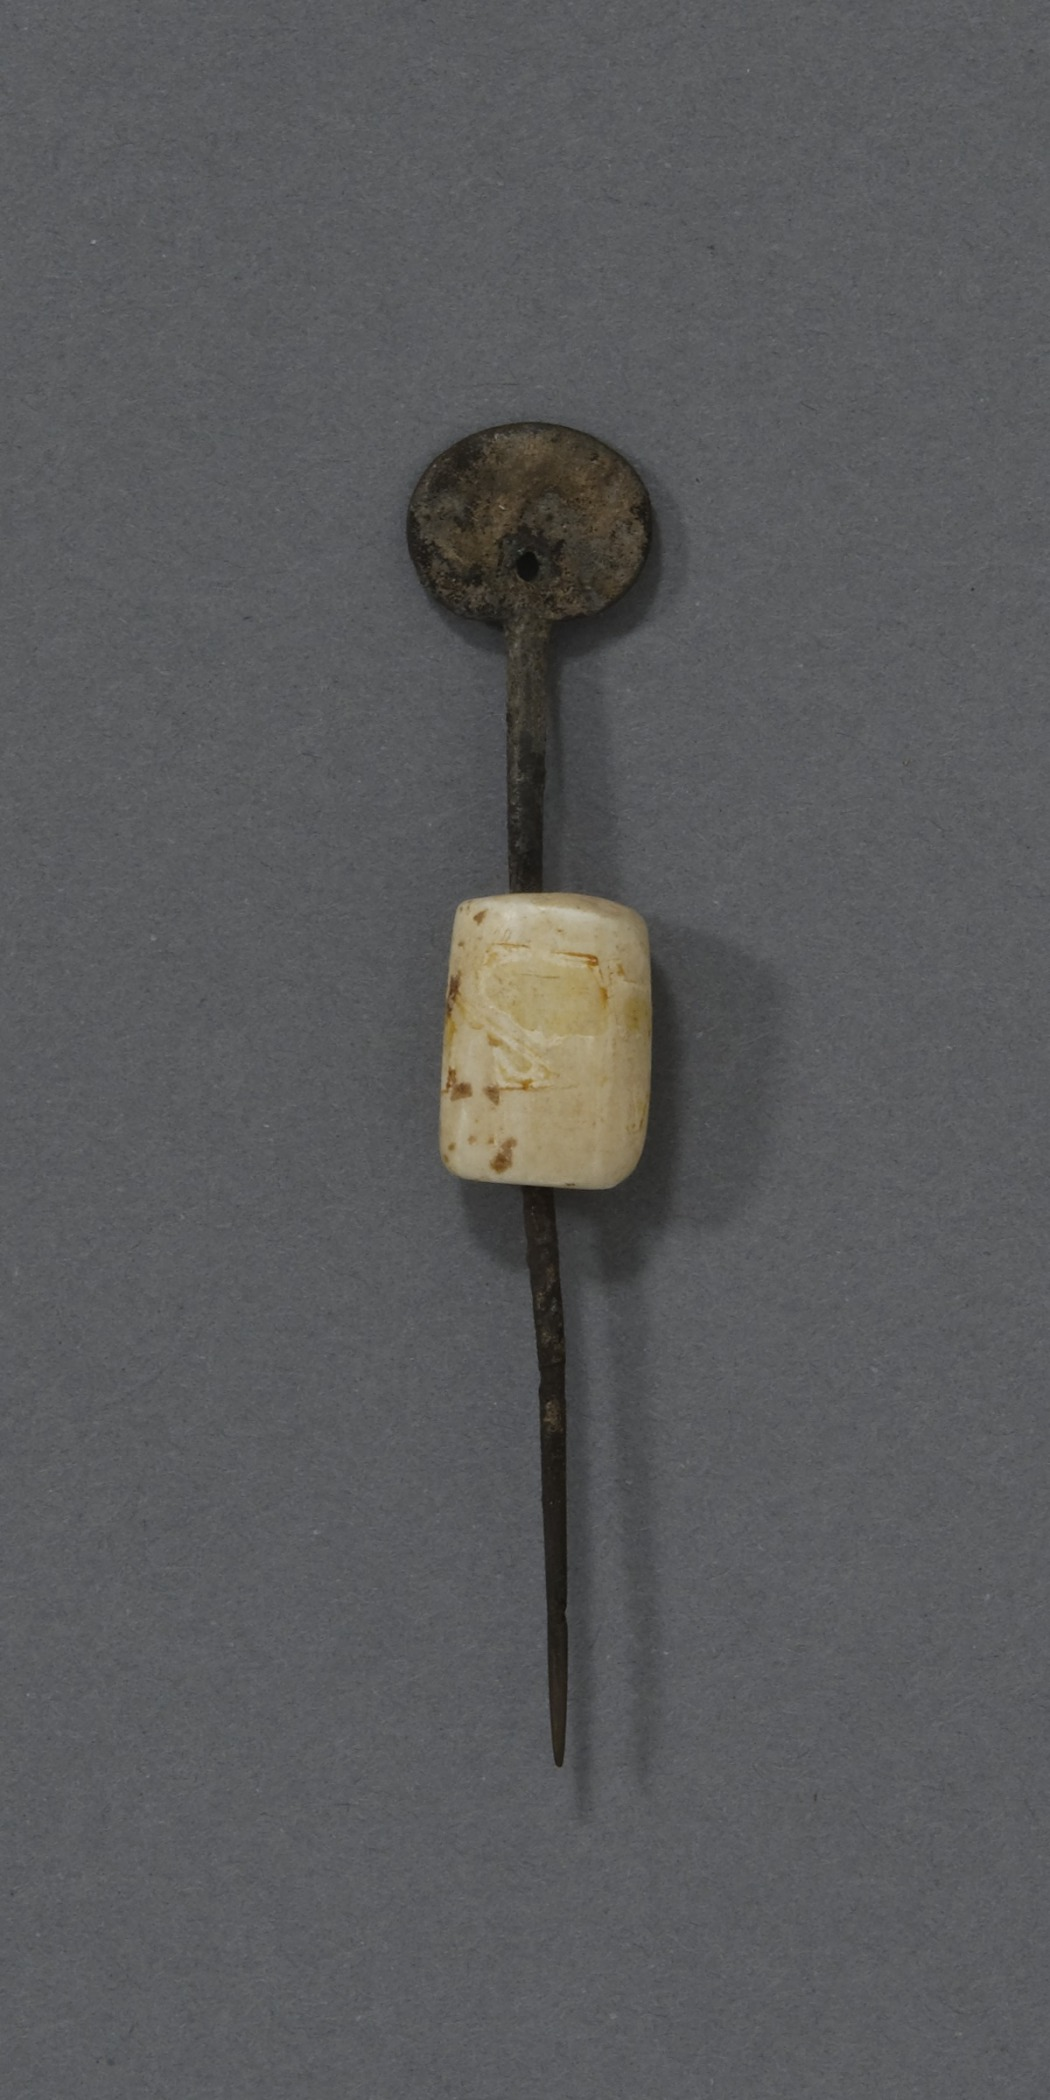 Kitlinermiut (Copper Inuit), woman's sewing awl with a round bone guard, collected 1953–62. Copper and bone, height: 3 15/16 in. Hood Museum of Art, Dartmouth College: Sherman P. and Anne L. Haight Arctic Collection; 168.94.24463.